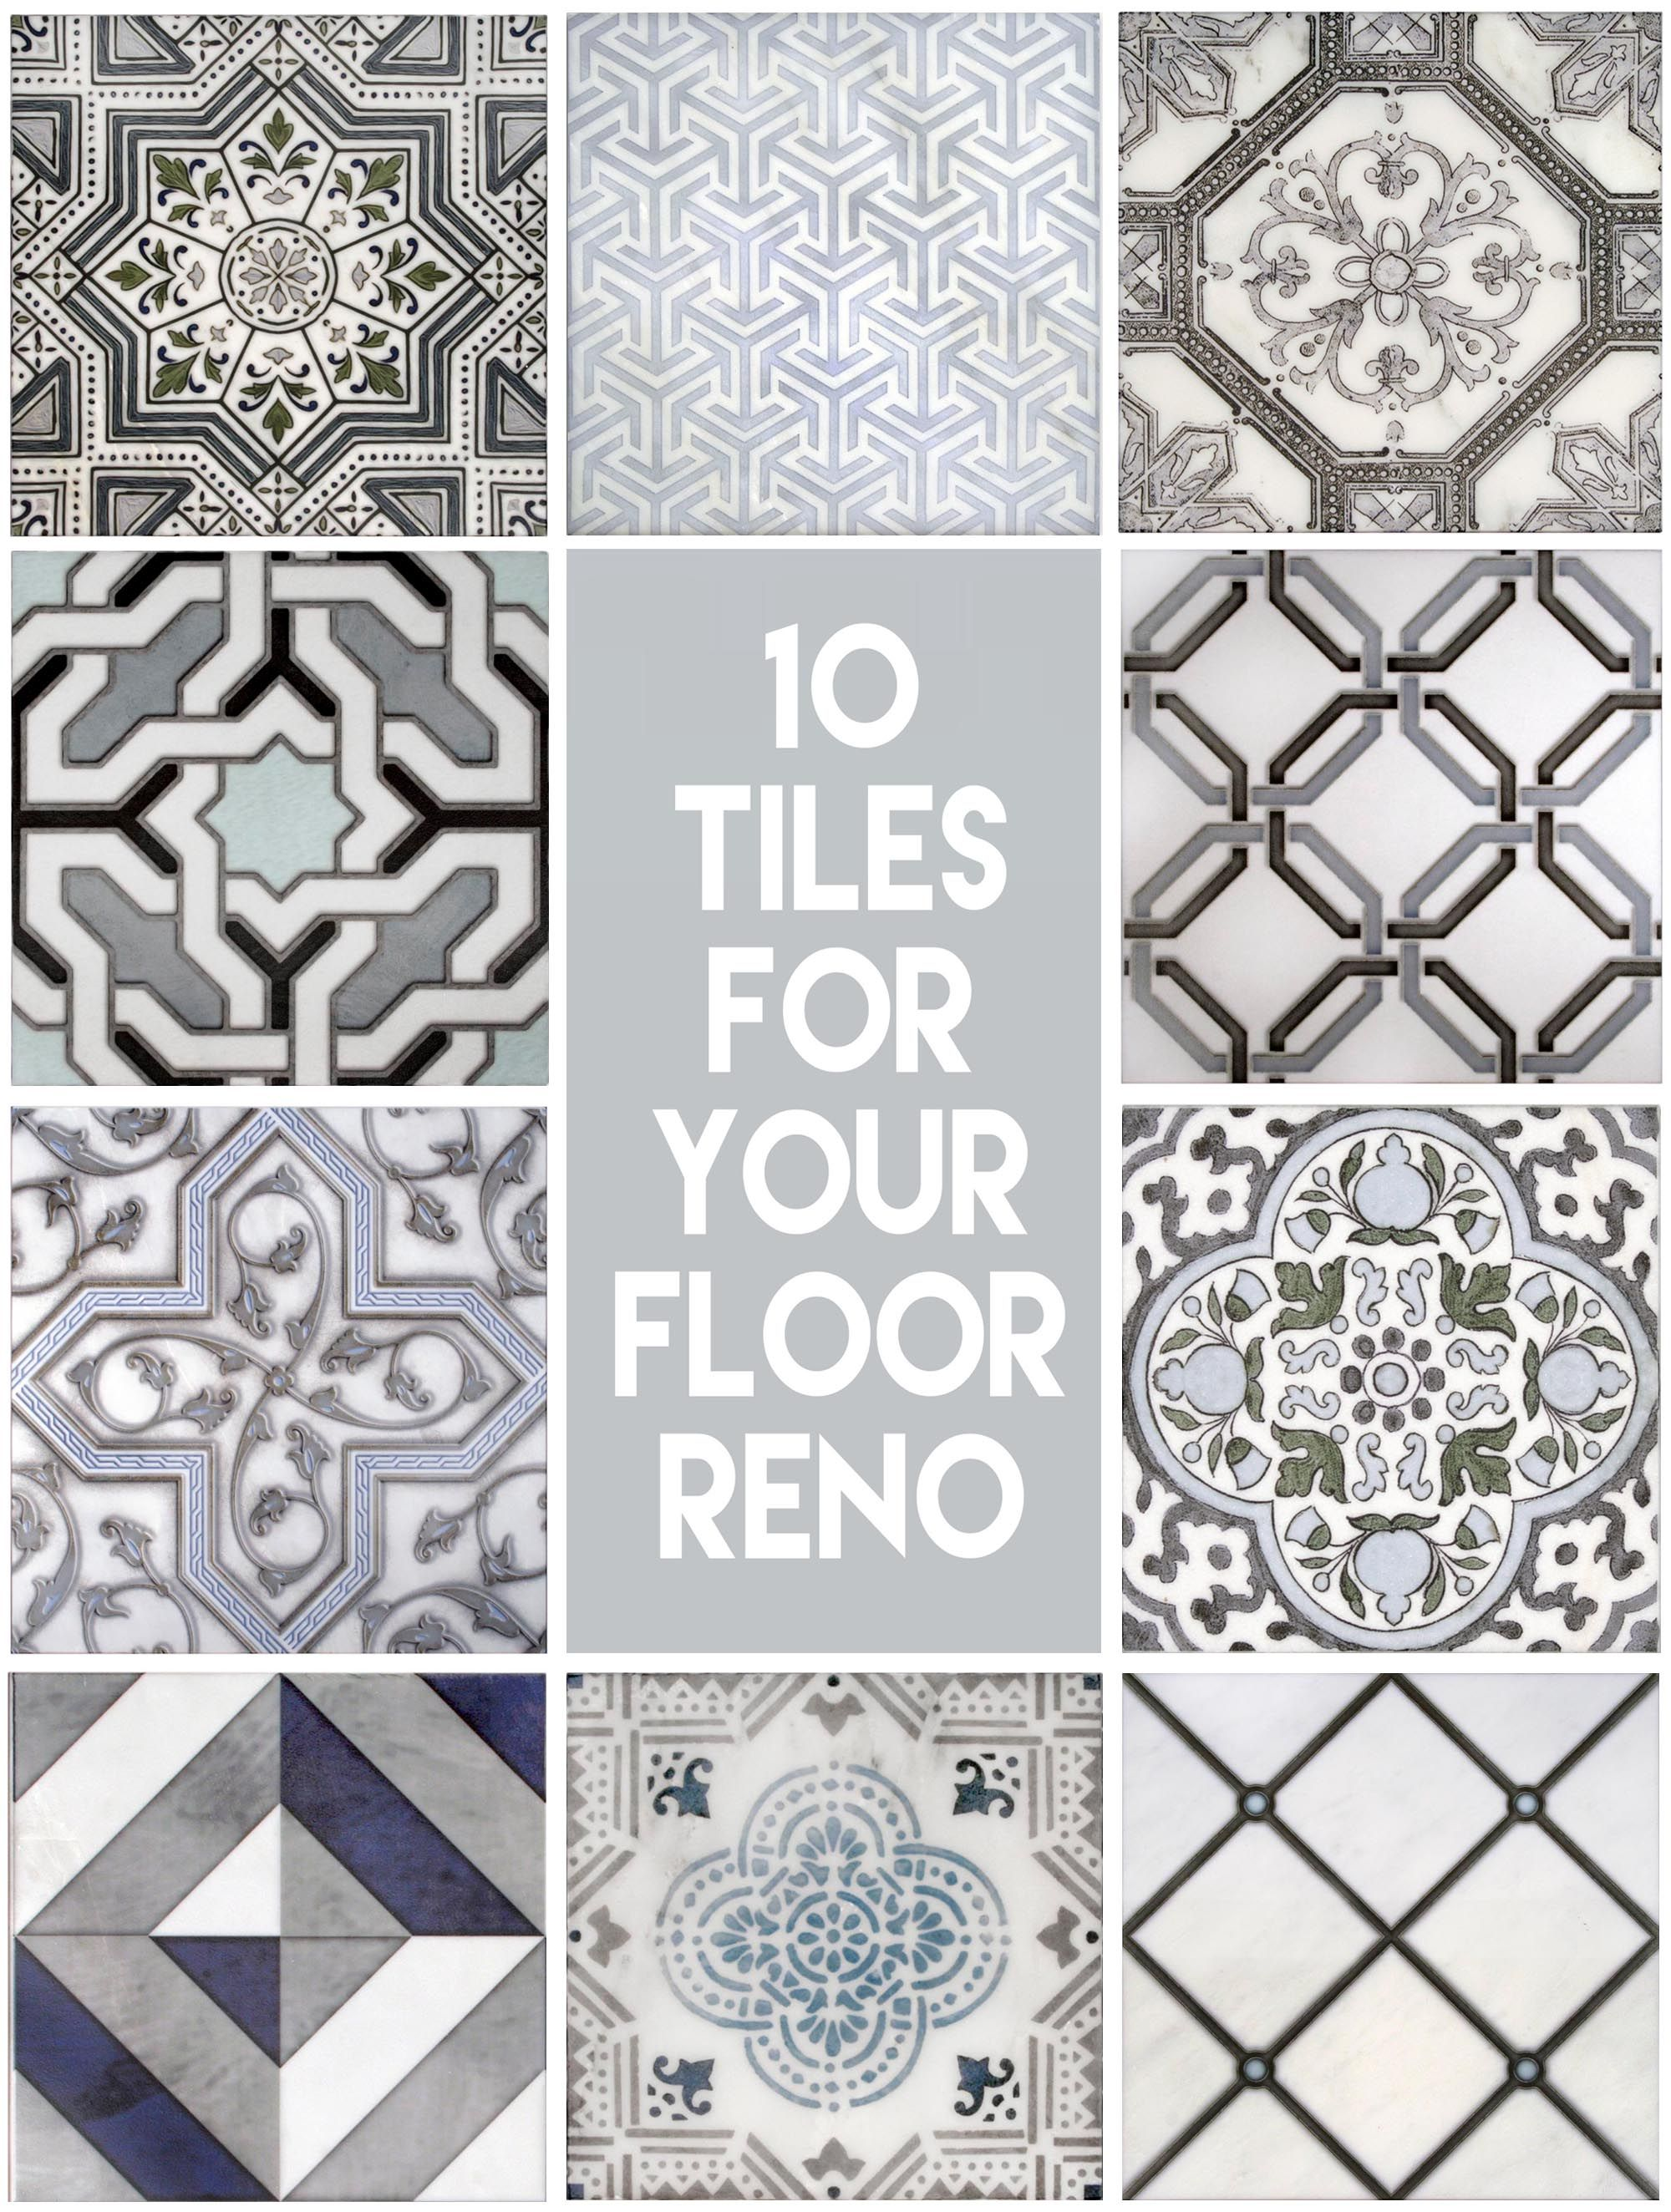 Decorative Tile It's Finally Time To Renovate Your Bathroom Add A Bold Decorative